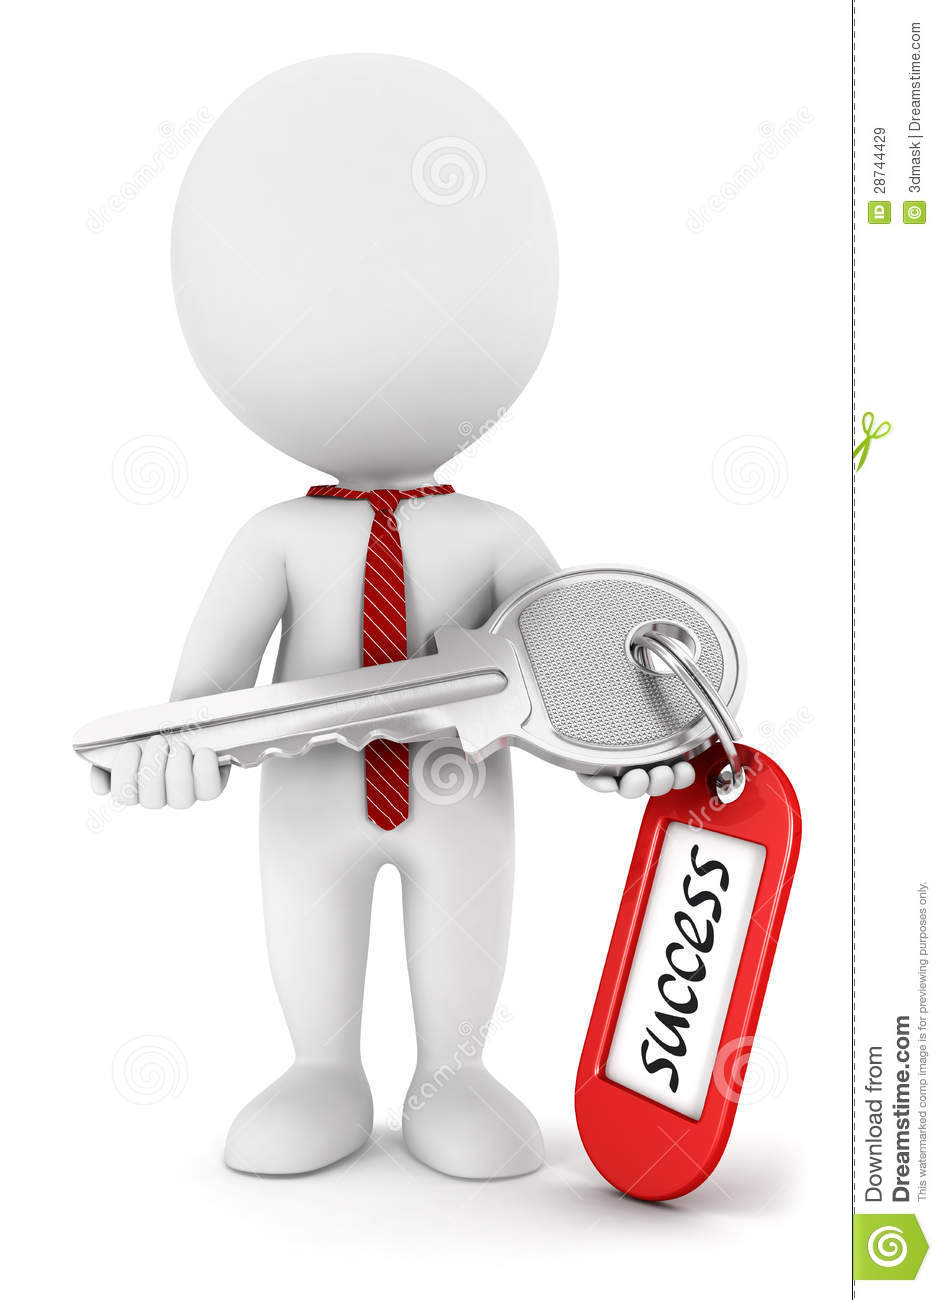 ... People Key To Success Royalty Free Stock Images - Image: 28744429: https://www.dreamstime.com/royalty-free-stock-images-3d-white...